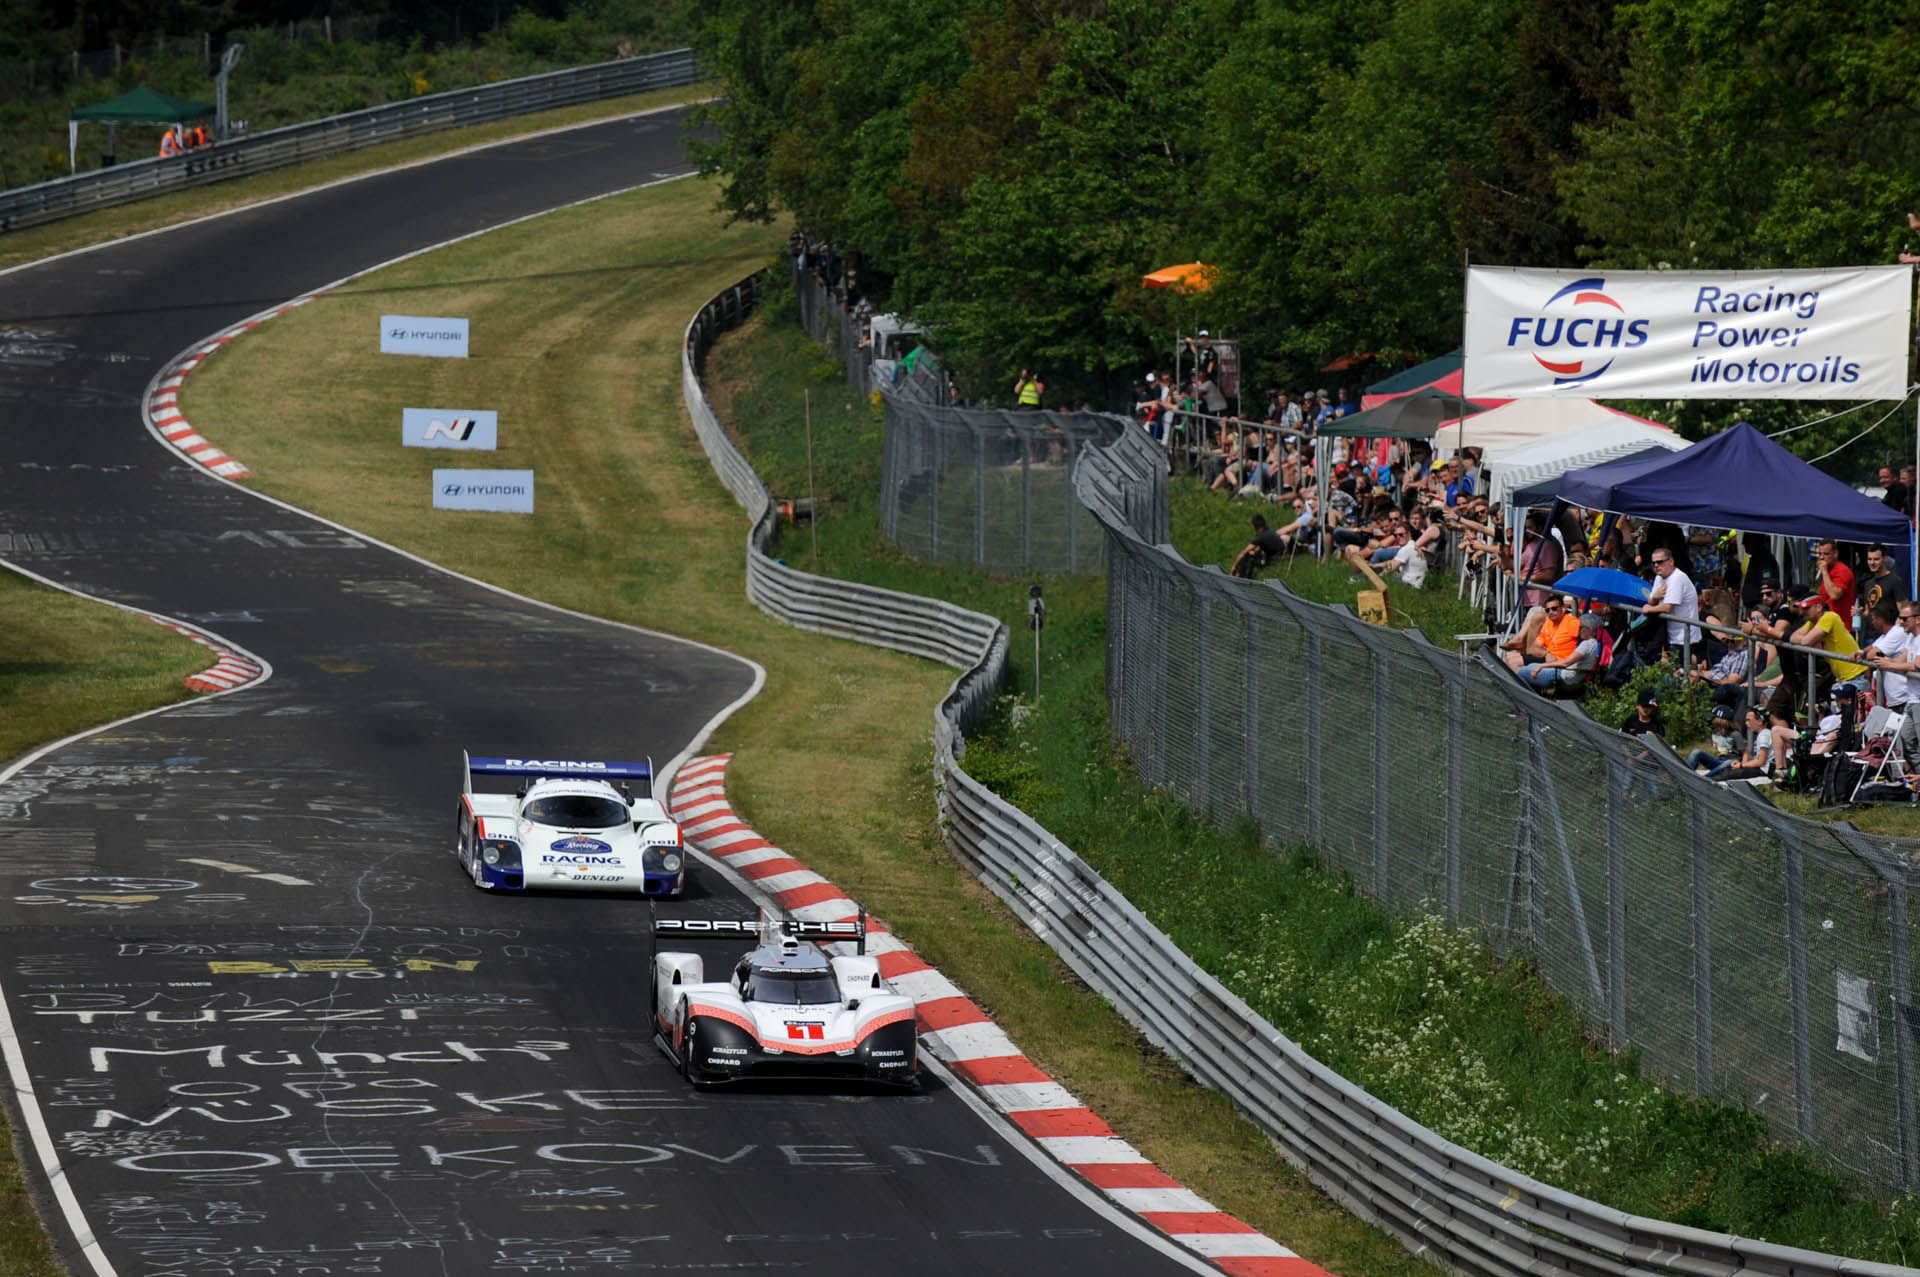 Porsche 919 Hybrid Evo and 956 at Nurburgring (8)